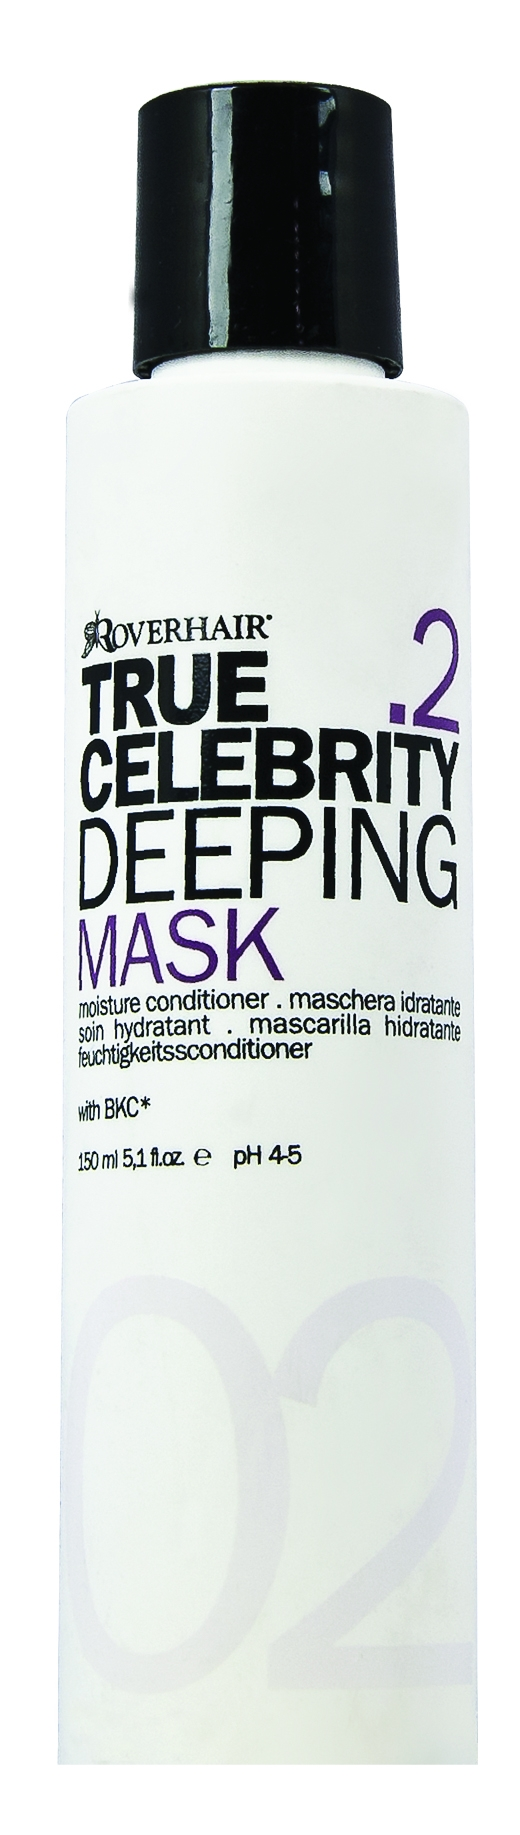 True Celebrity Deeping Mask Image